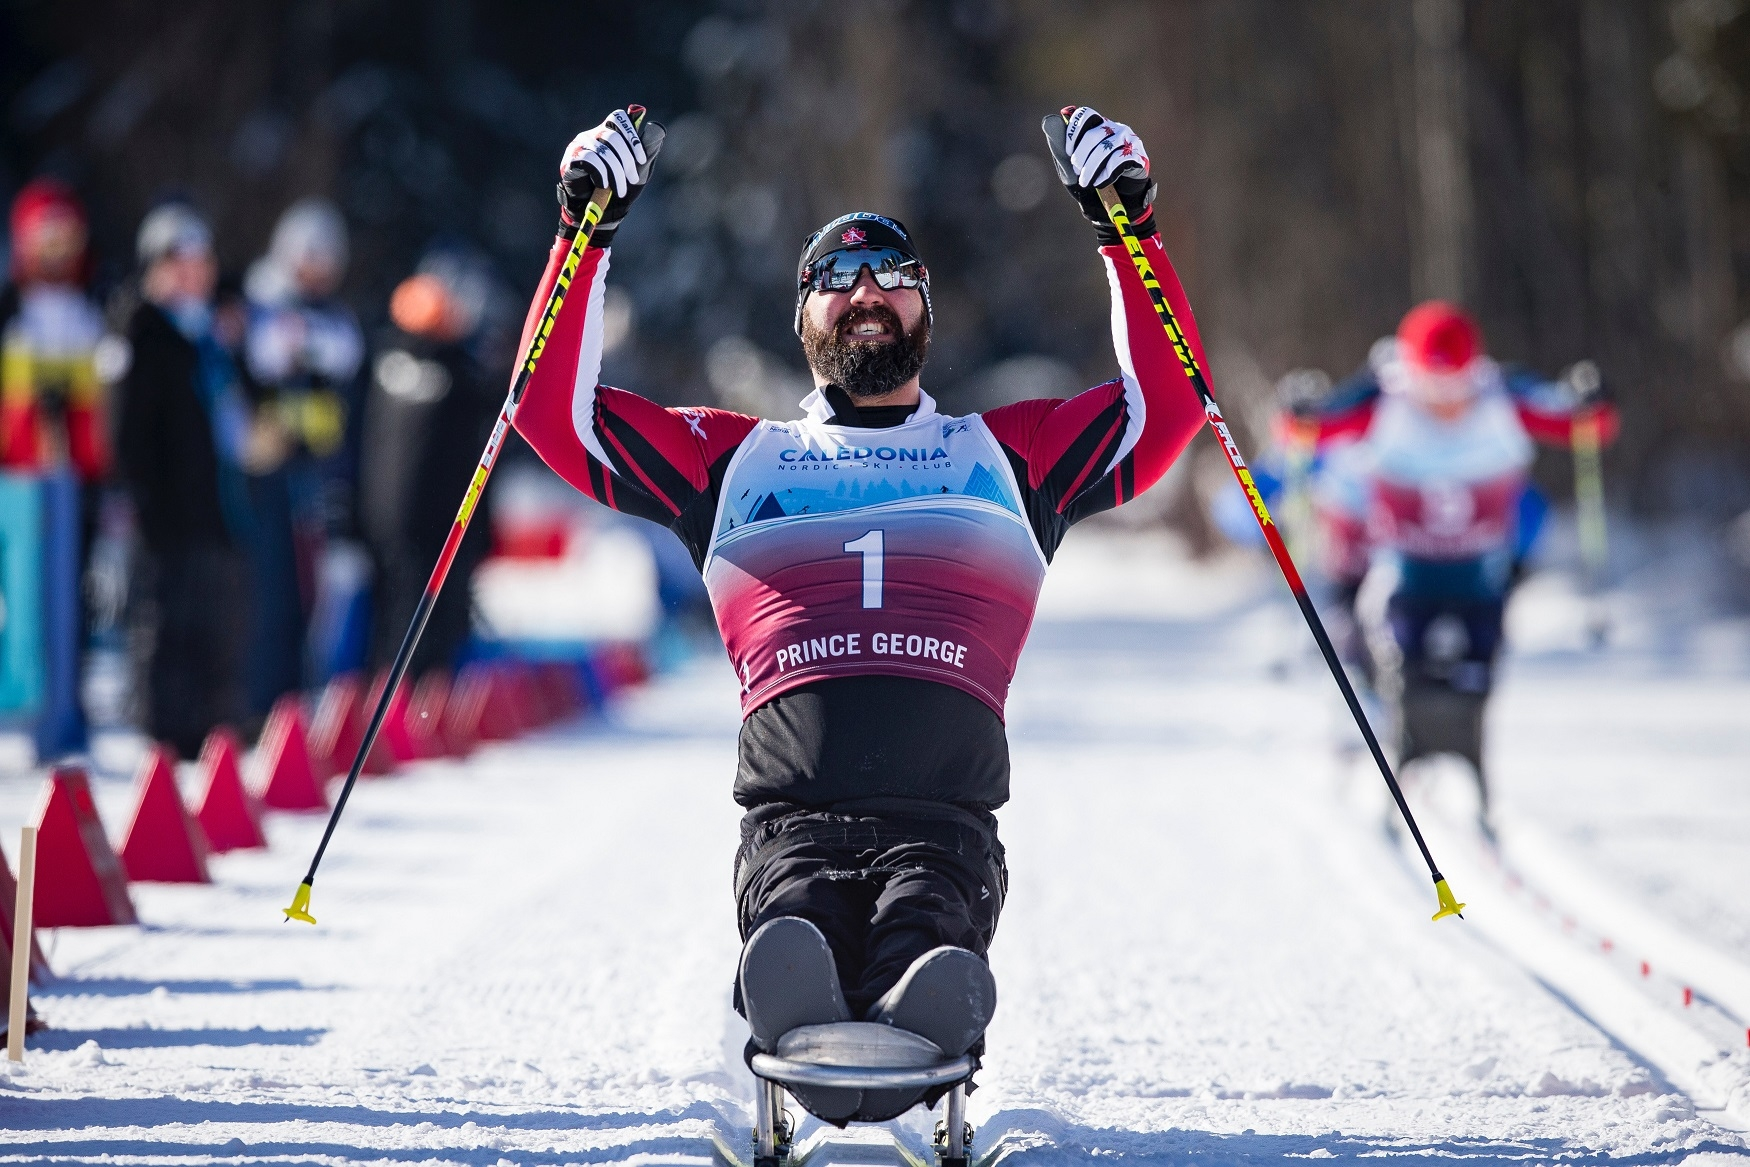 Collin Cameron raises his arms in victory at the 2019 World Para Nordic Skiing Championships